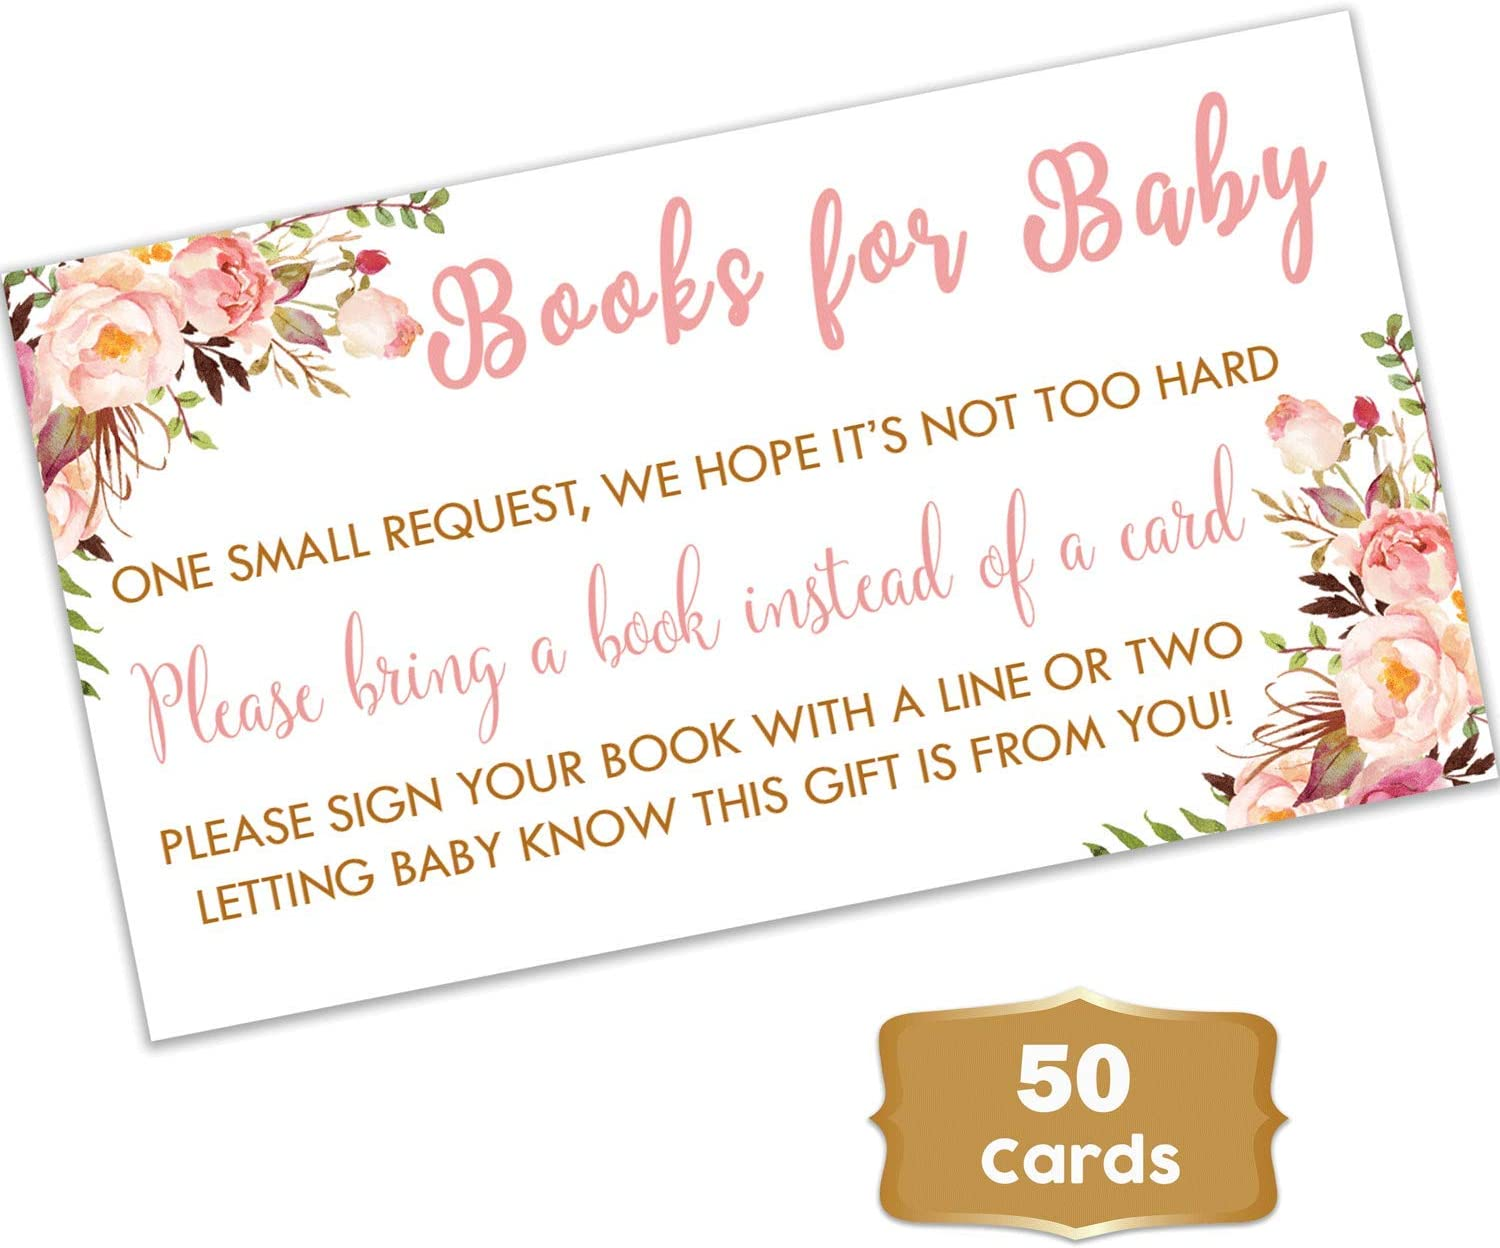 Boho Floral – Baby Shower Floral Books for Baby Request Cards 50 Count Girl Baby Shower Books for Baby Pink Flowers Books for Baby Shower Fun Baby Shower Activities